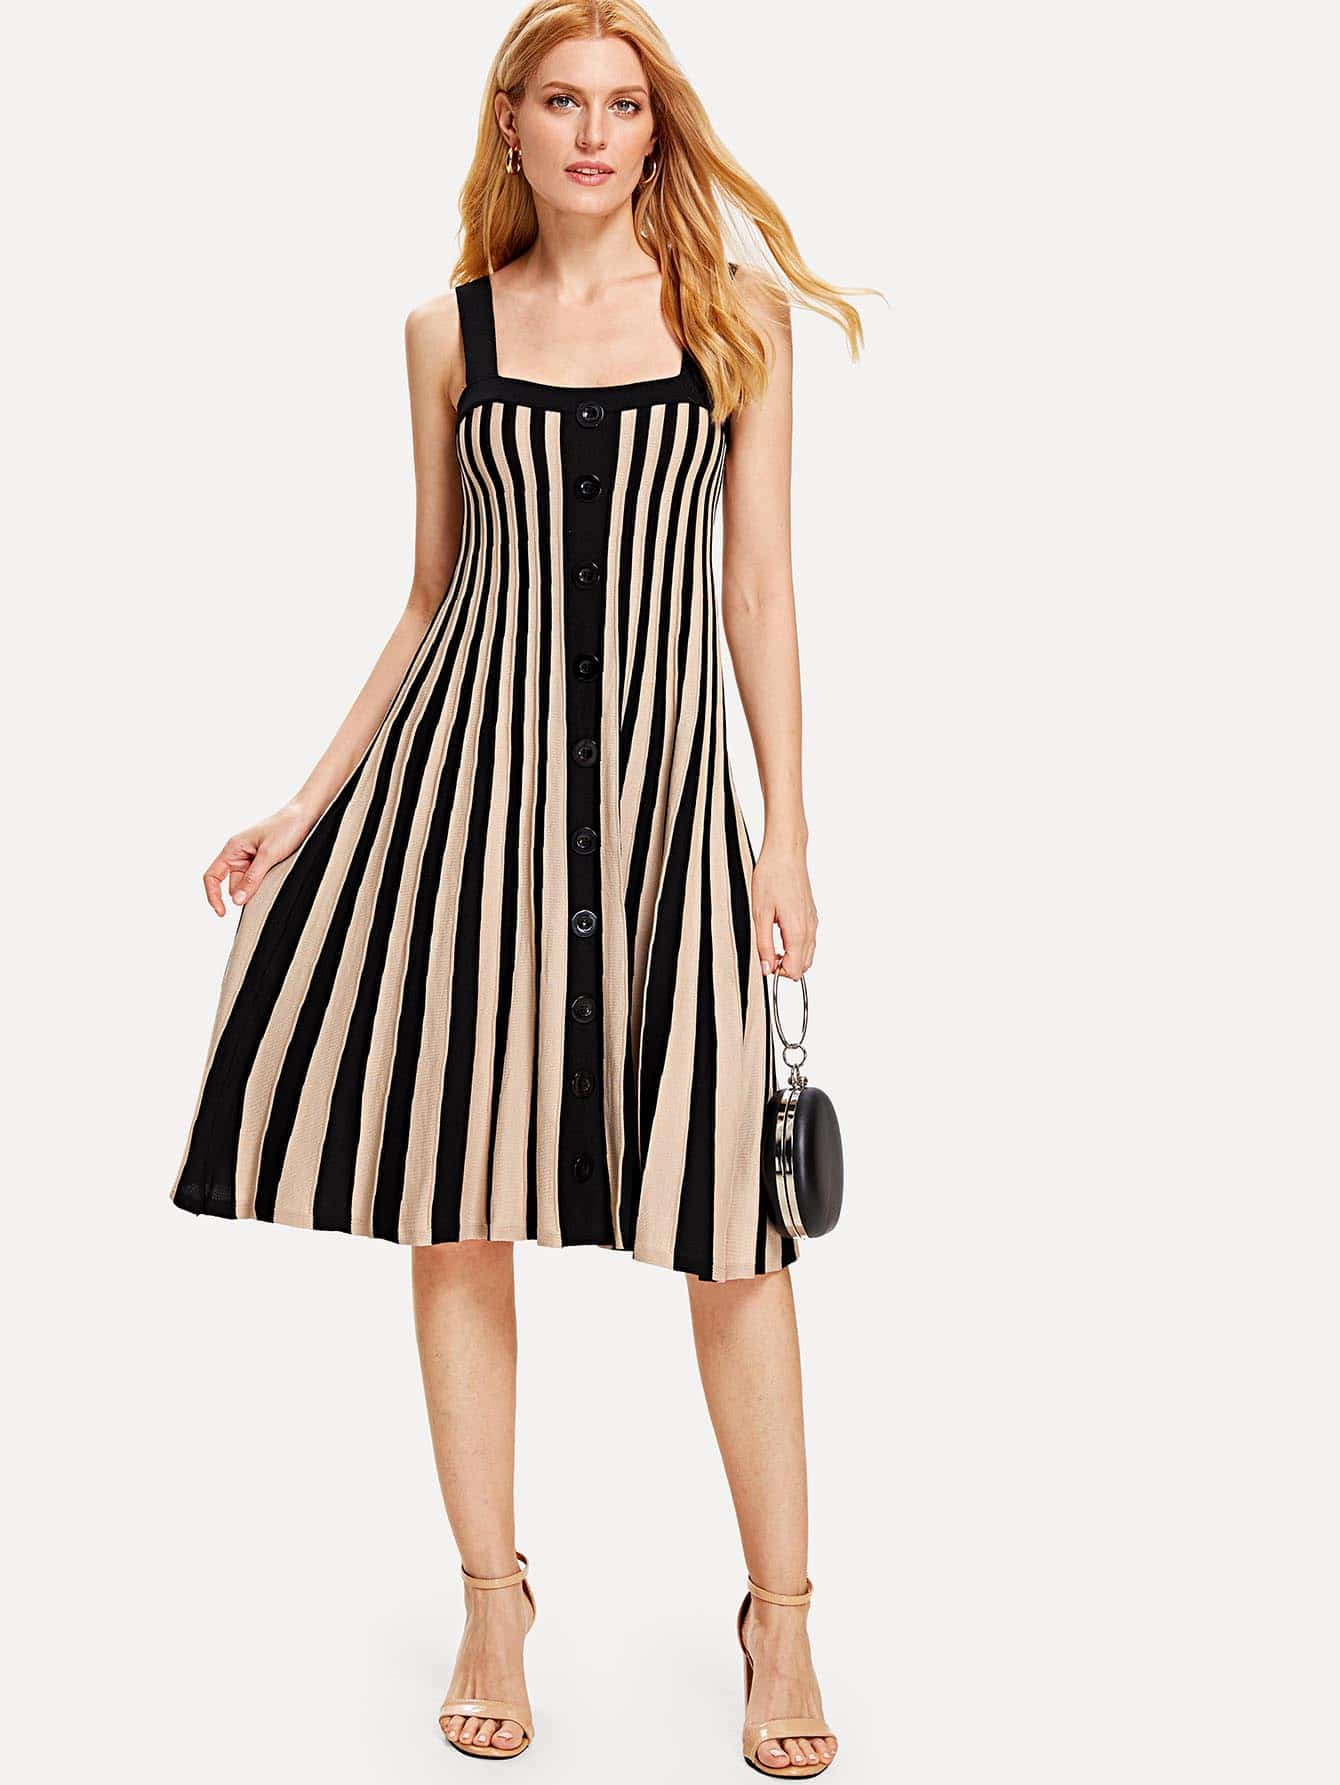 Contrast Striped Single Breasted Dress contrast striped single breasted dress